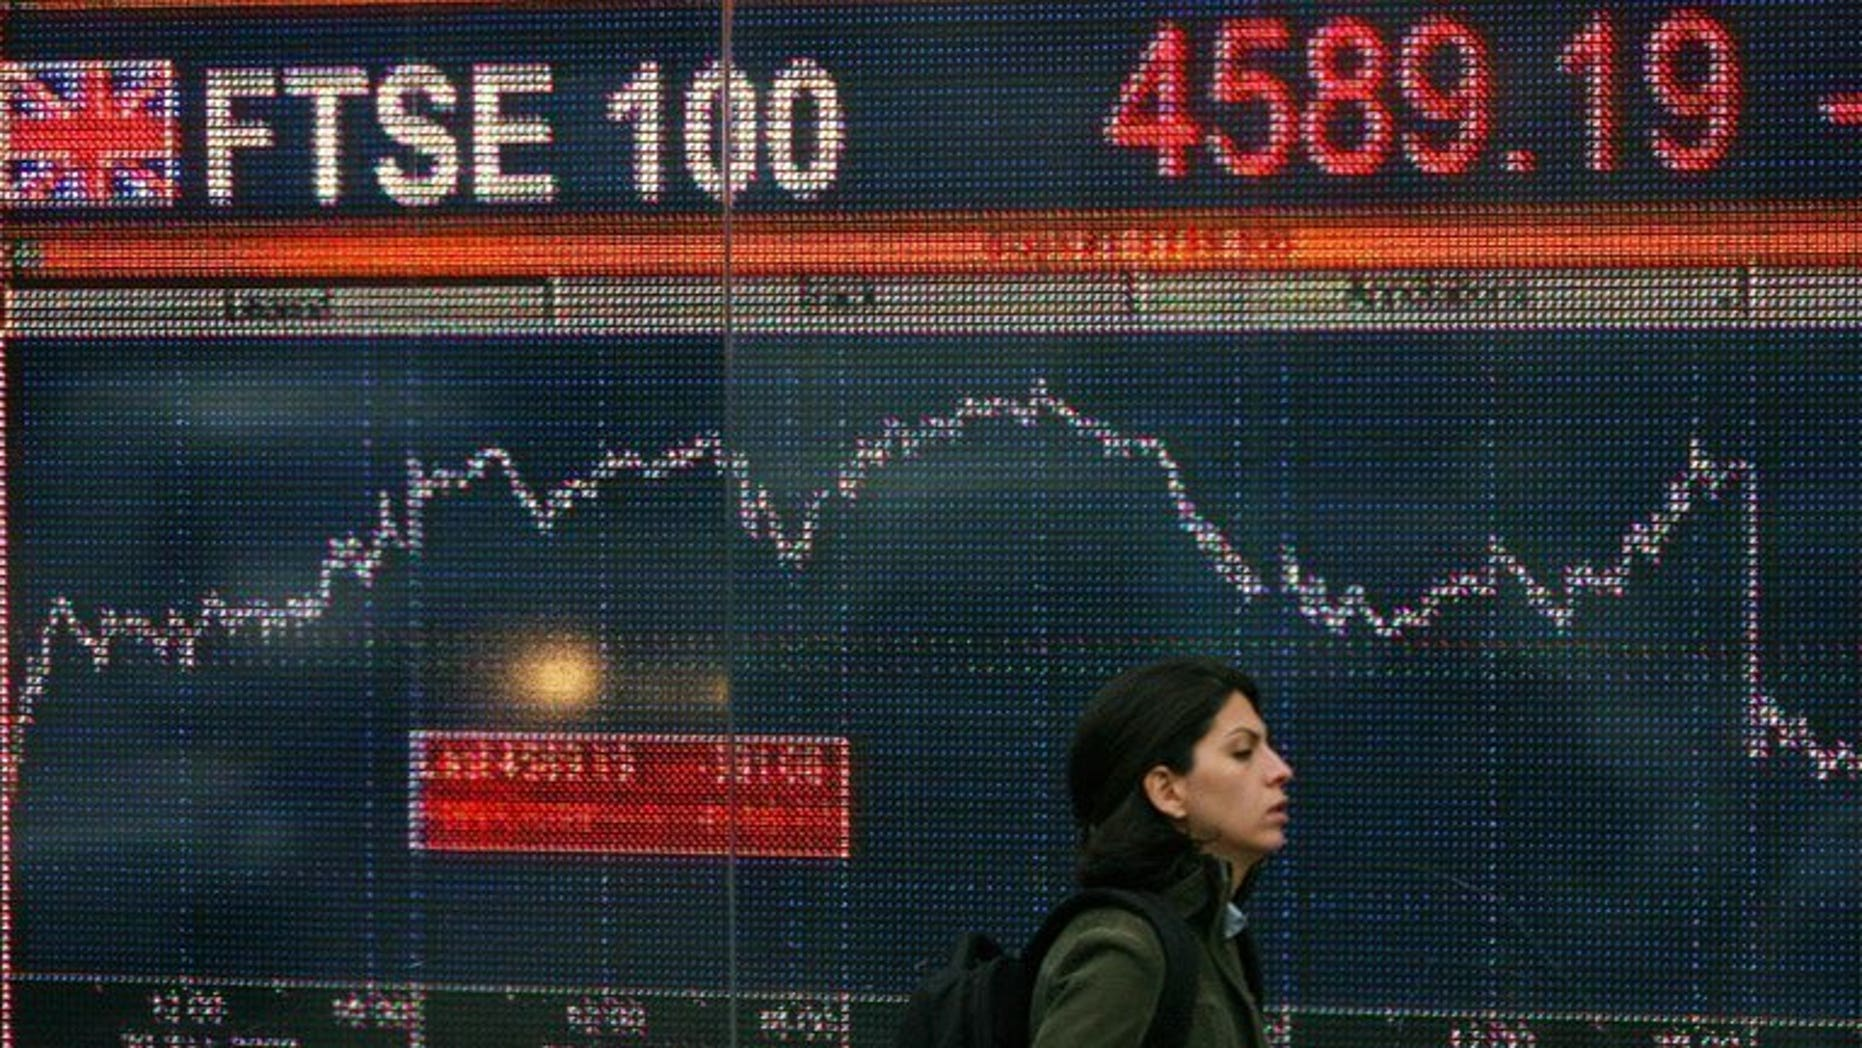 File picture shows a woman walking past an electronic sign showing the progress of the FTSE 100 share index in London on October 6, 2008.